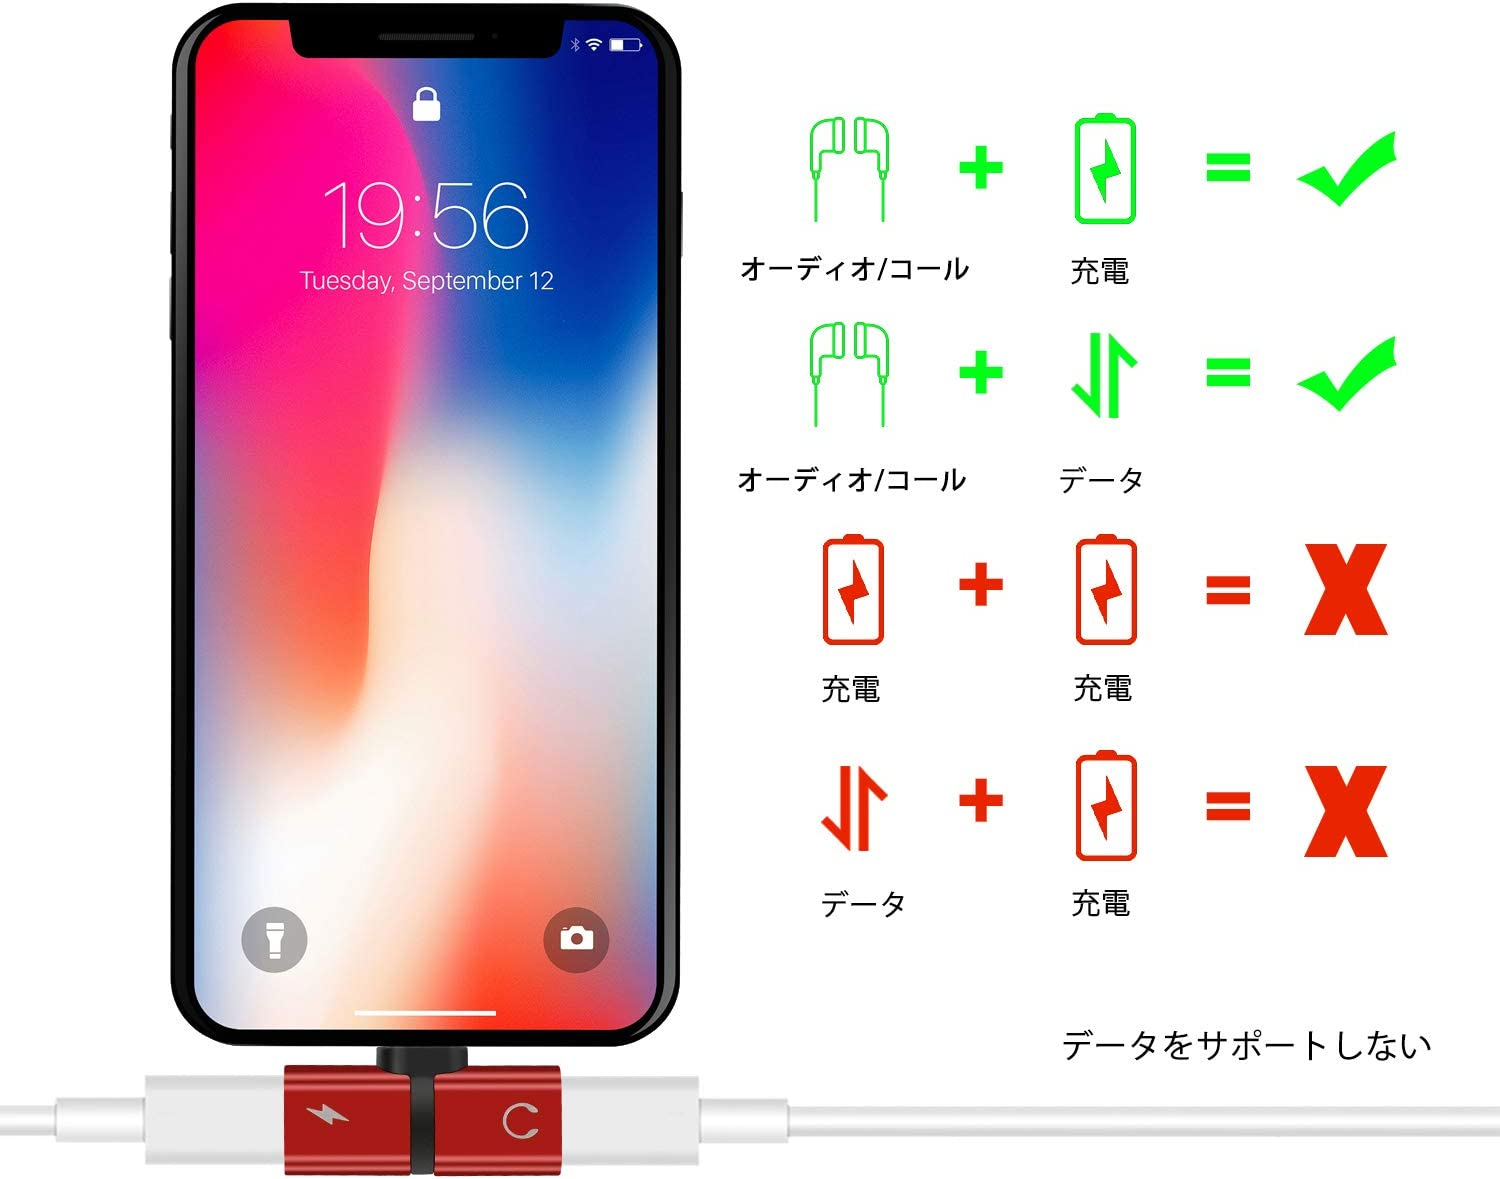 Red Headphone/Jack/Adapter 2 in 1 Dual Headphone Jack Audio for iPhone X 8Plus 8 7Plus 7 Music/Headphones Charging Adapter Charger Accessories Phone Call Adapter